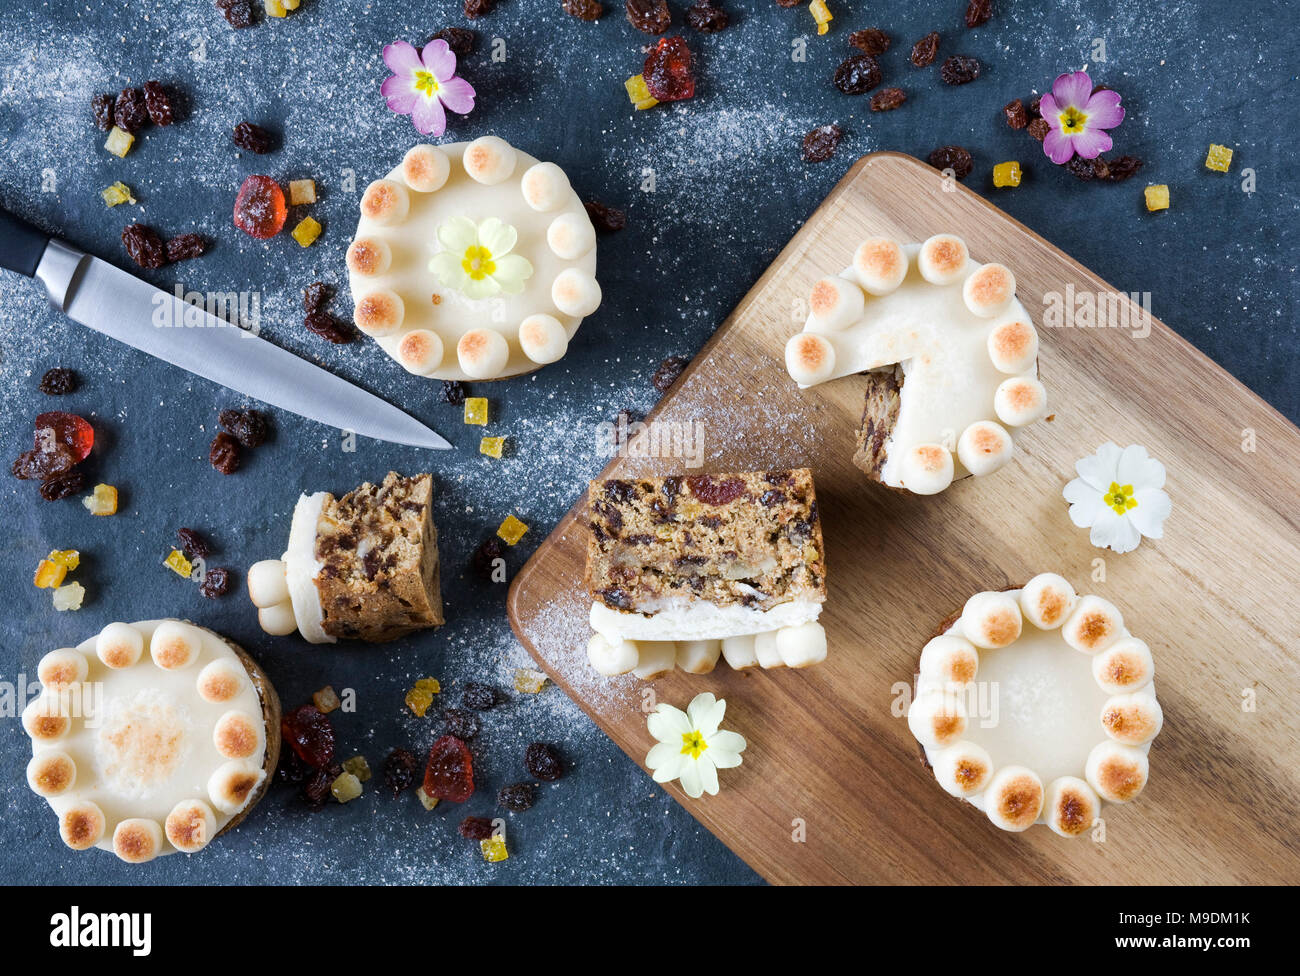 Homemade miniature simnel cakes on slate. - Stock Image